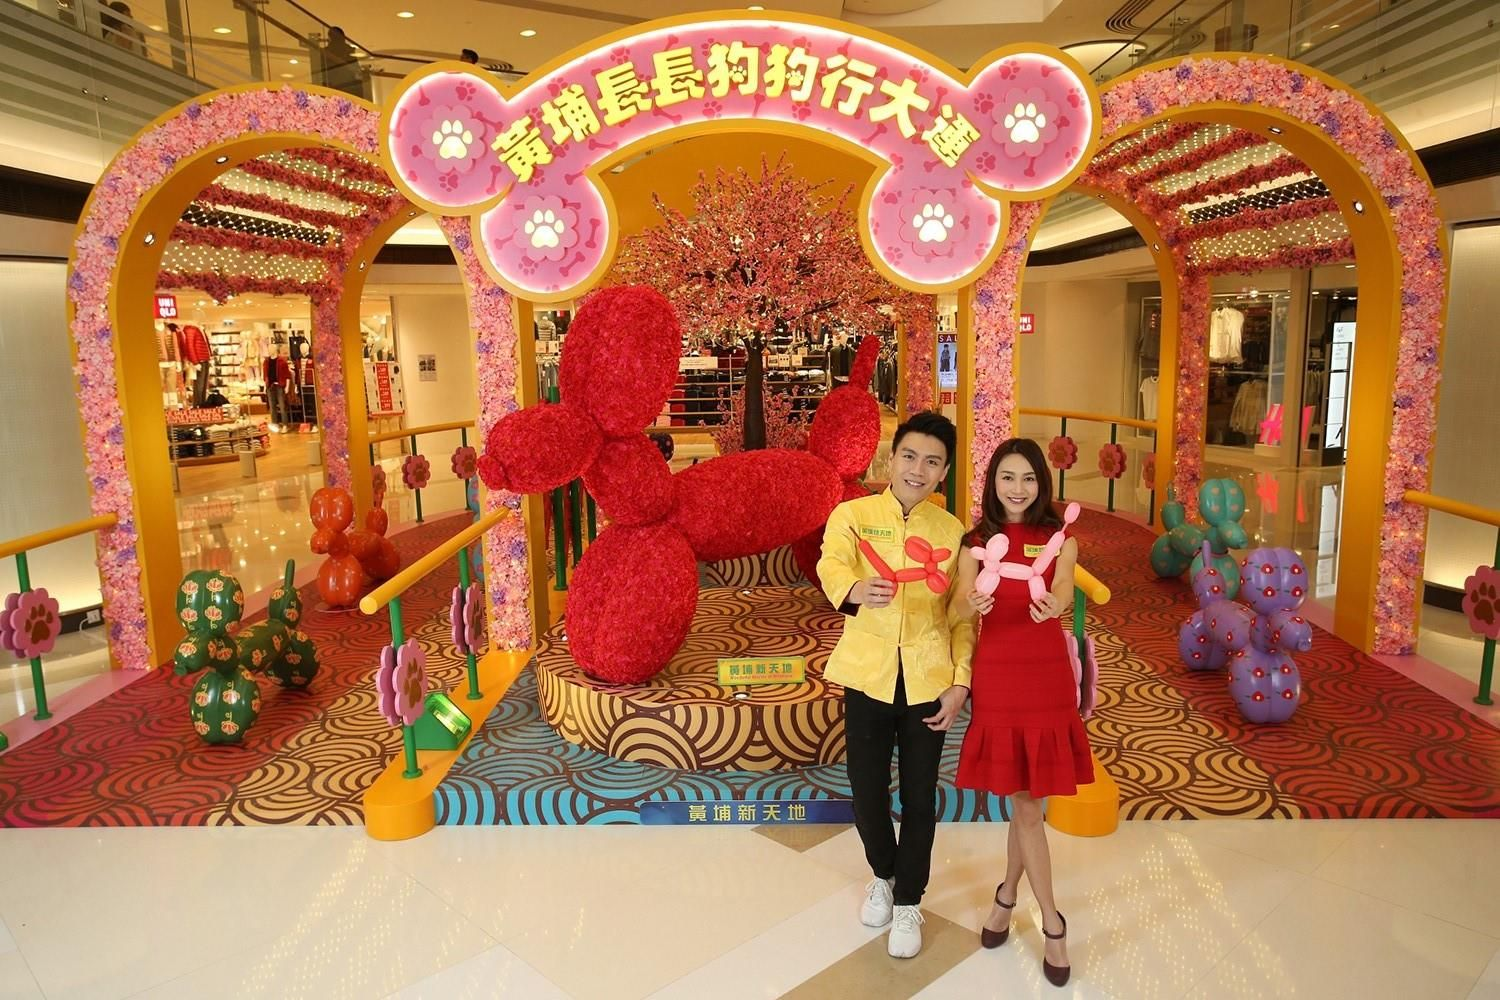 TheWhampoa_LunarNewYear2018_3 in 2020 New years